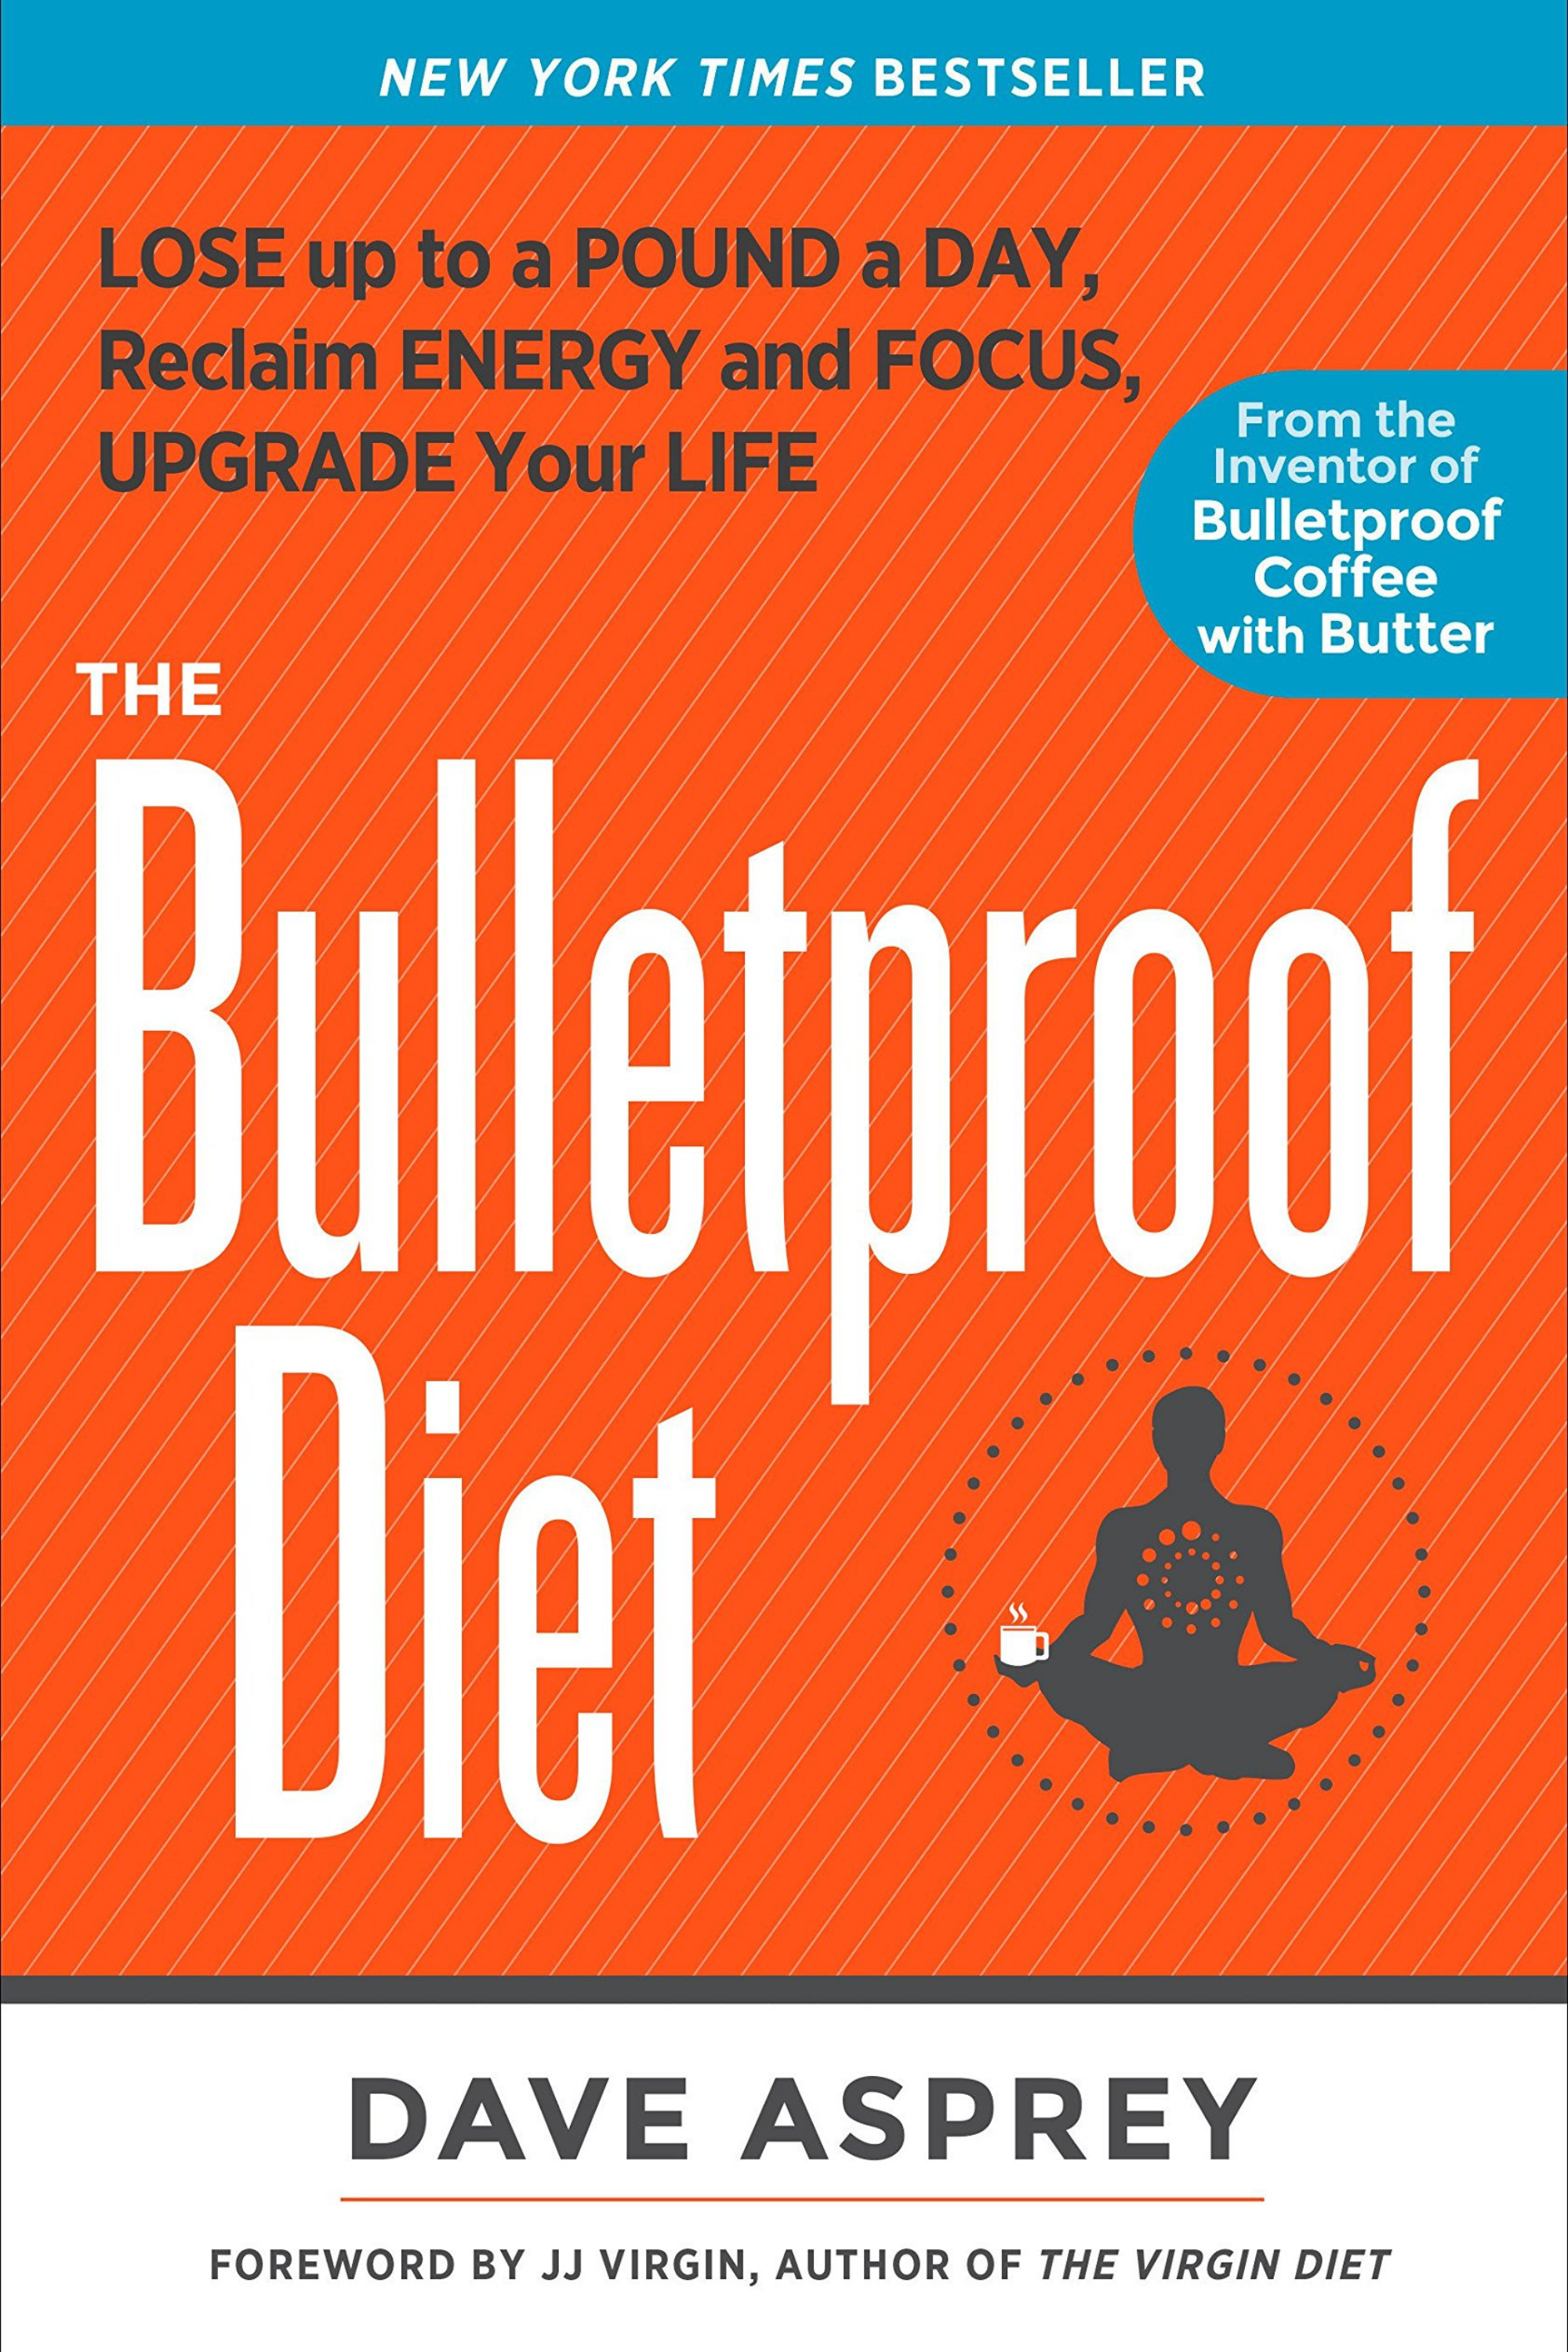 Bulletproof Dave Asprey Courtney Elmer.png